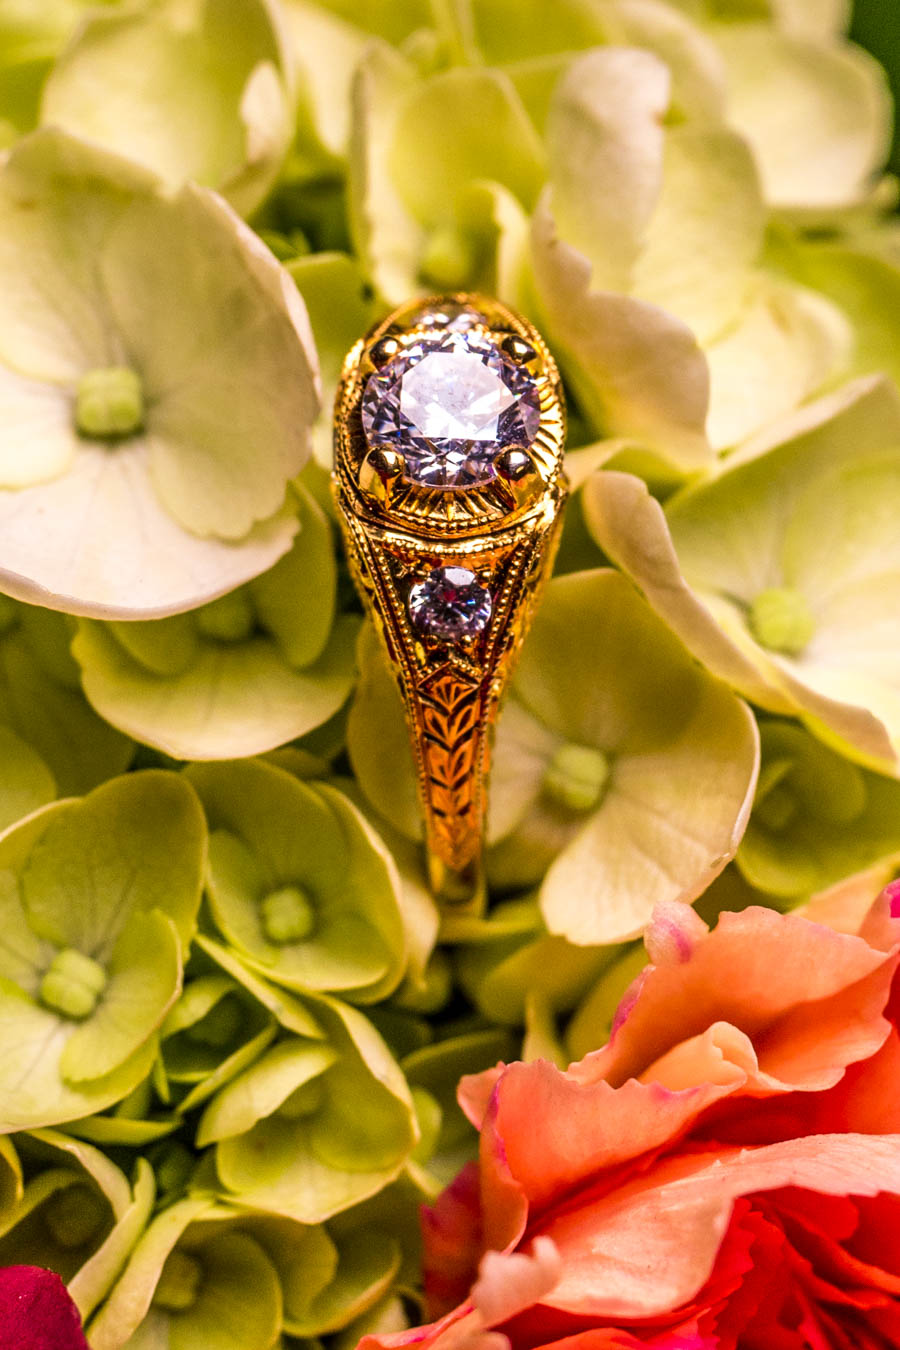 Floral Burst Ring / Image: Catherine Viox{ }// Published: 10.8.19